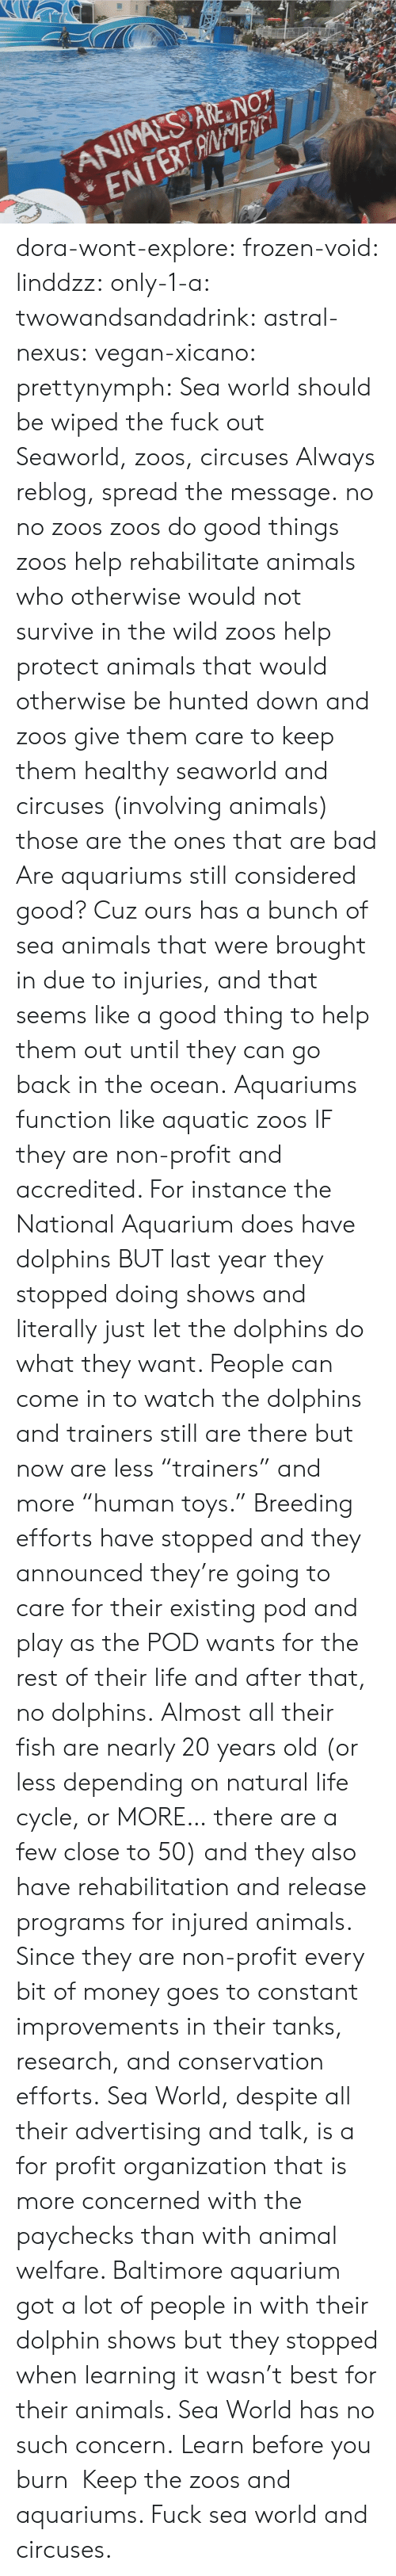 "Dolphins: ANIMALS ARE NOT  ENTERTANENTi dora-wont-explore:   frozen-void:  linddzz:  only-1-a:  twowandsandadrink:  astral-nexus:  vegan-xicano:  prettynymph:  Sea world should be wiped the fuck out  Seaworld, zoos, circuses  Always reblog, spread the message.  no no zoos zoos do good things zoos help rehabilitate animals who otherwise would not survive in the wild zoos help protect animals that would otherwise be hunted down and zoos give them care to keep them healthy seaworld and circuses (involving animals) those are the ones that are bad  Are aquariums still considered good? Cuz ours has a bunch of sea animals that were brought in due to injuries, and that seems like a good thing to help them out until they can go back in the ocean.  Aquariums function like aquatic zoos IF they are non-profit and accredited. For instance the National Aquarium does have dolphins BUT last year they stopped doing shows and literally just let the dolphins do what they want. People can come in to watch the dolphins and trainers still are there but now are less ""trainers"" and more ""human toys."" Breeding efforts have stopped and they announced they're going to care for their existing pod and play as the POD wants for the rest of their life and after that, no dolphins. Almost all their fish are nearly 20 years old (or less depending on natural life cycle, or MORE… there are a few close to 50) and they also have rehabilitation and release programs for injured animals. Since they are non-profit every bit of money goes to constant improvements in their tanks, research, and conservation efforts. Sea World, despite all their advertising and talk, is a for profit organization that is more concerned with the paychecks than with animal welfare. Baltimore aquarium got a lot of people in with their dolphin shows but they stopped when learning it wasn't best for their animals. Sea World has no such concern.  Learn before you burn   Keep the zoos and aquariums. Fuck sea world and circuses."